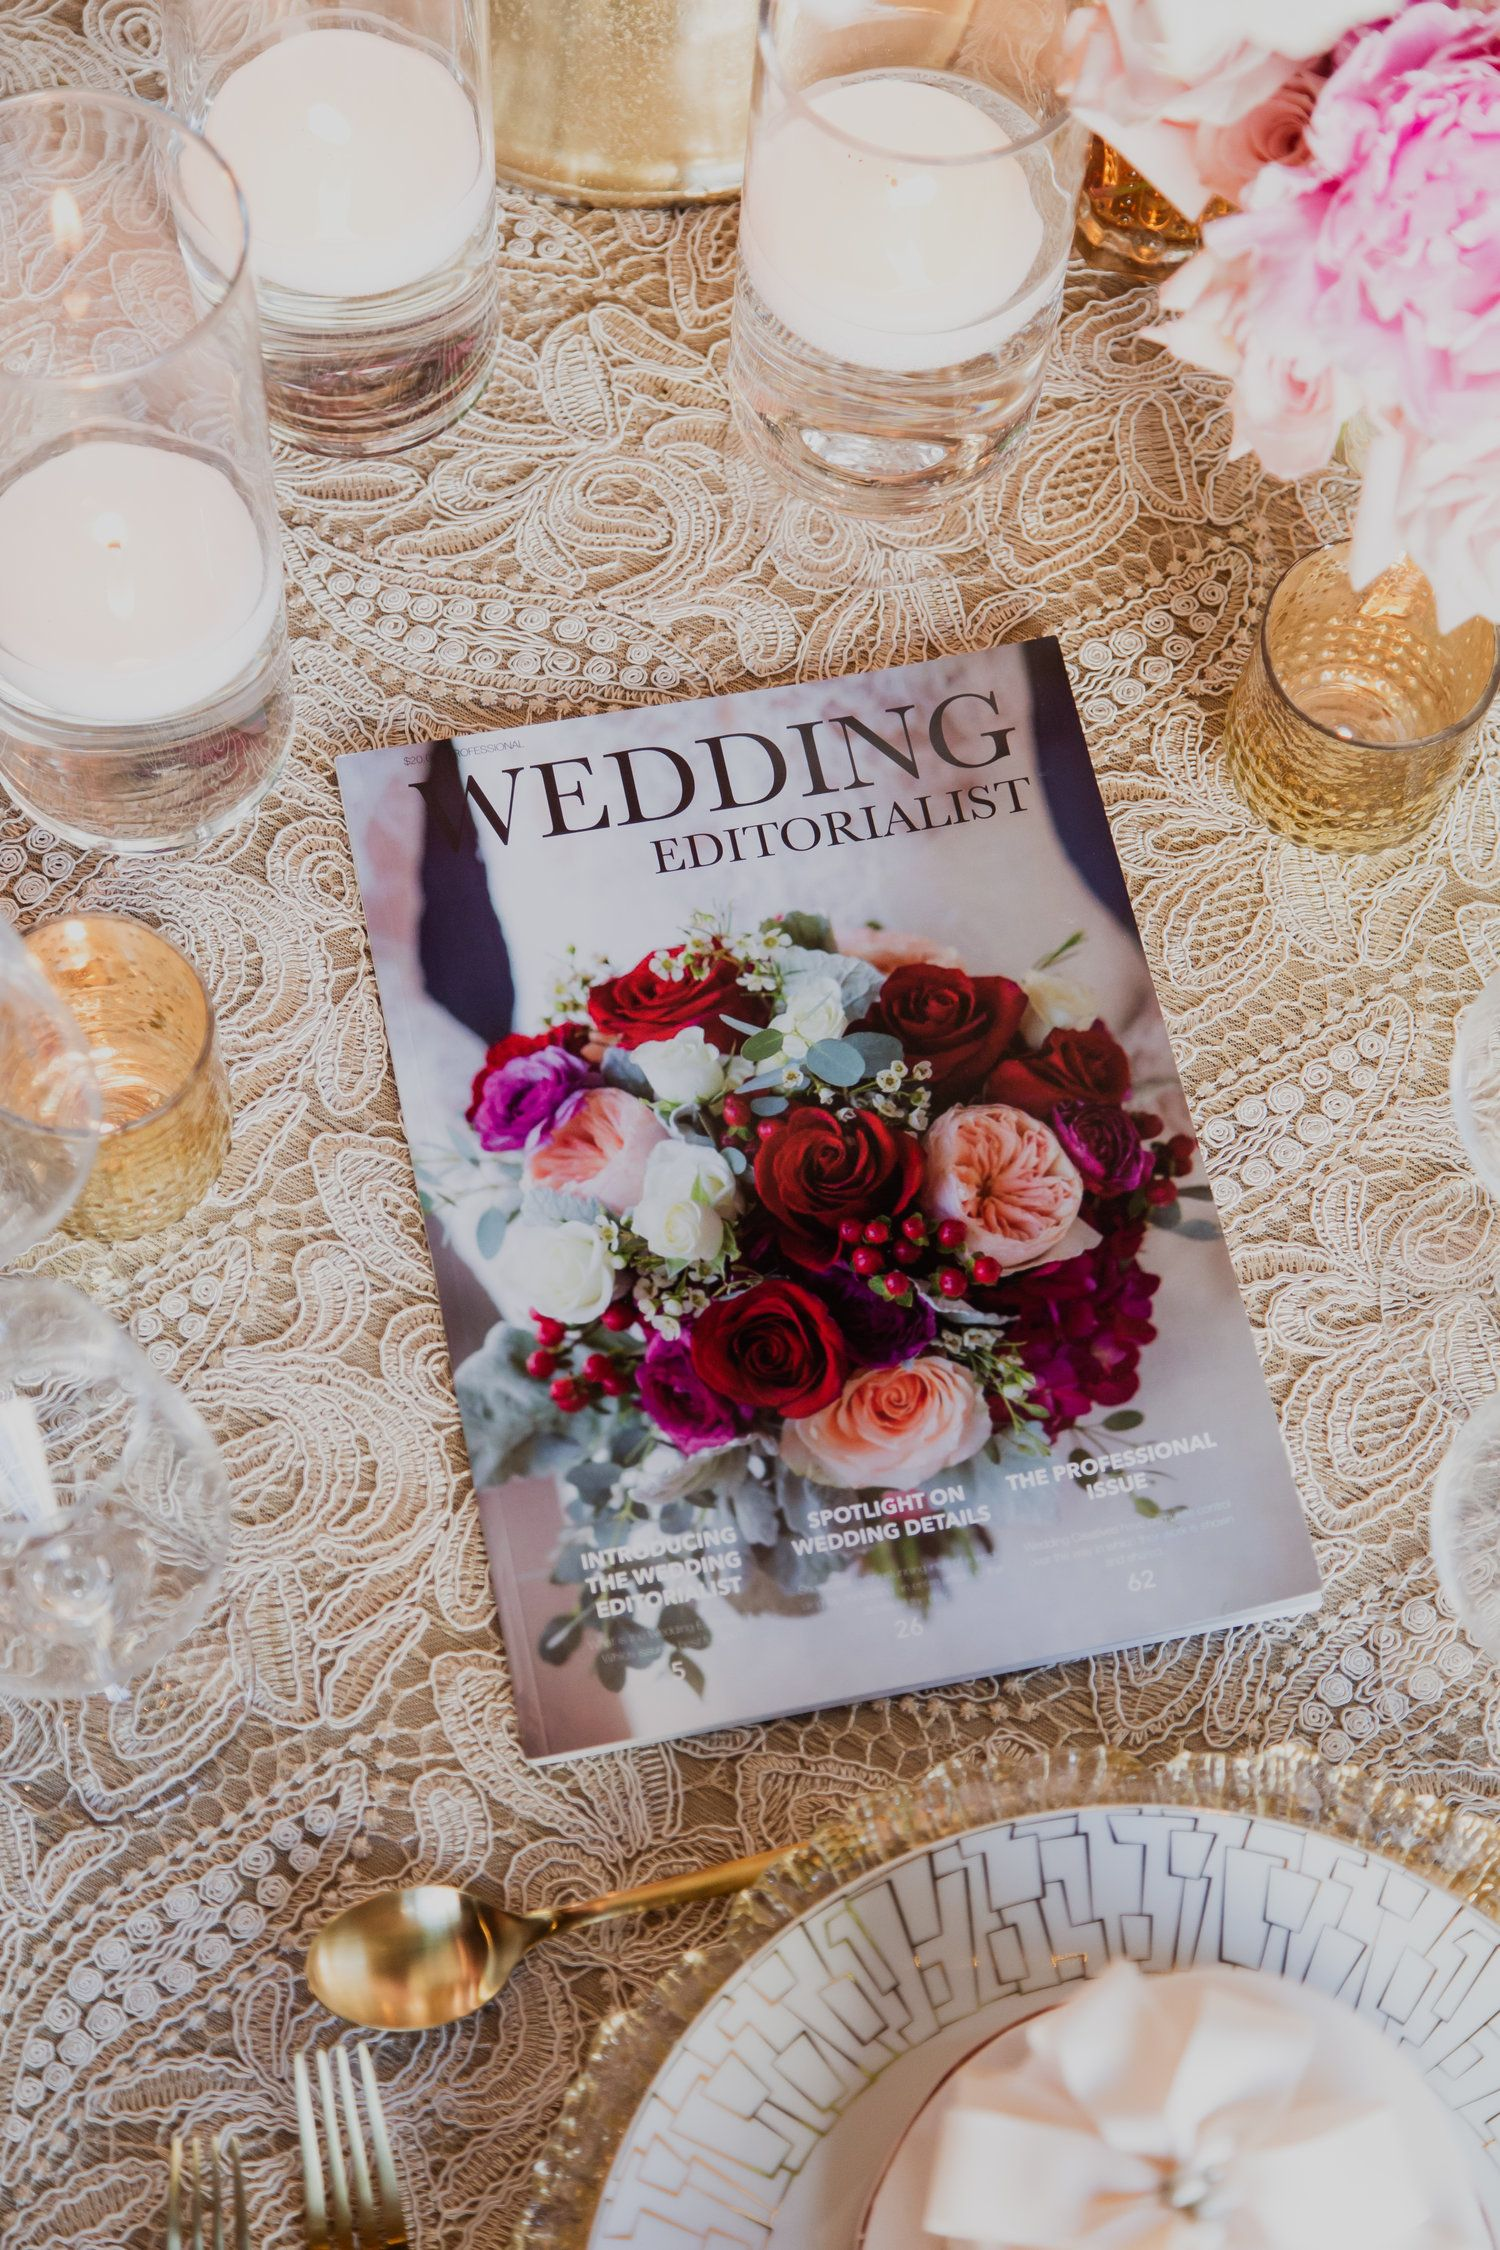 Design Your Own Personalized Magazine With The Wedding Editorialist